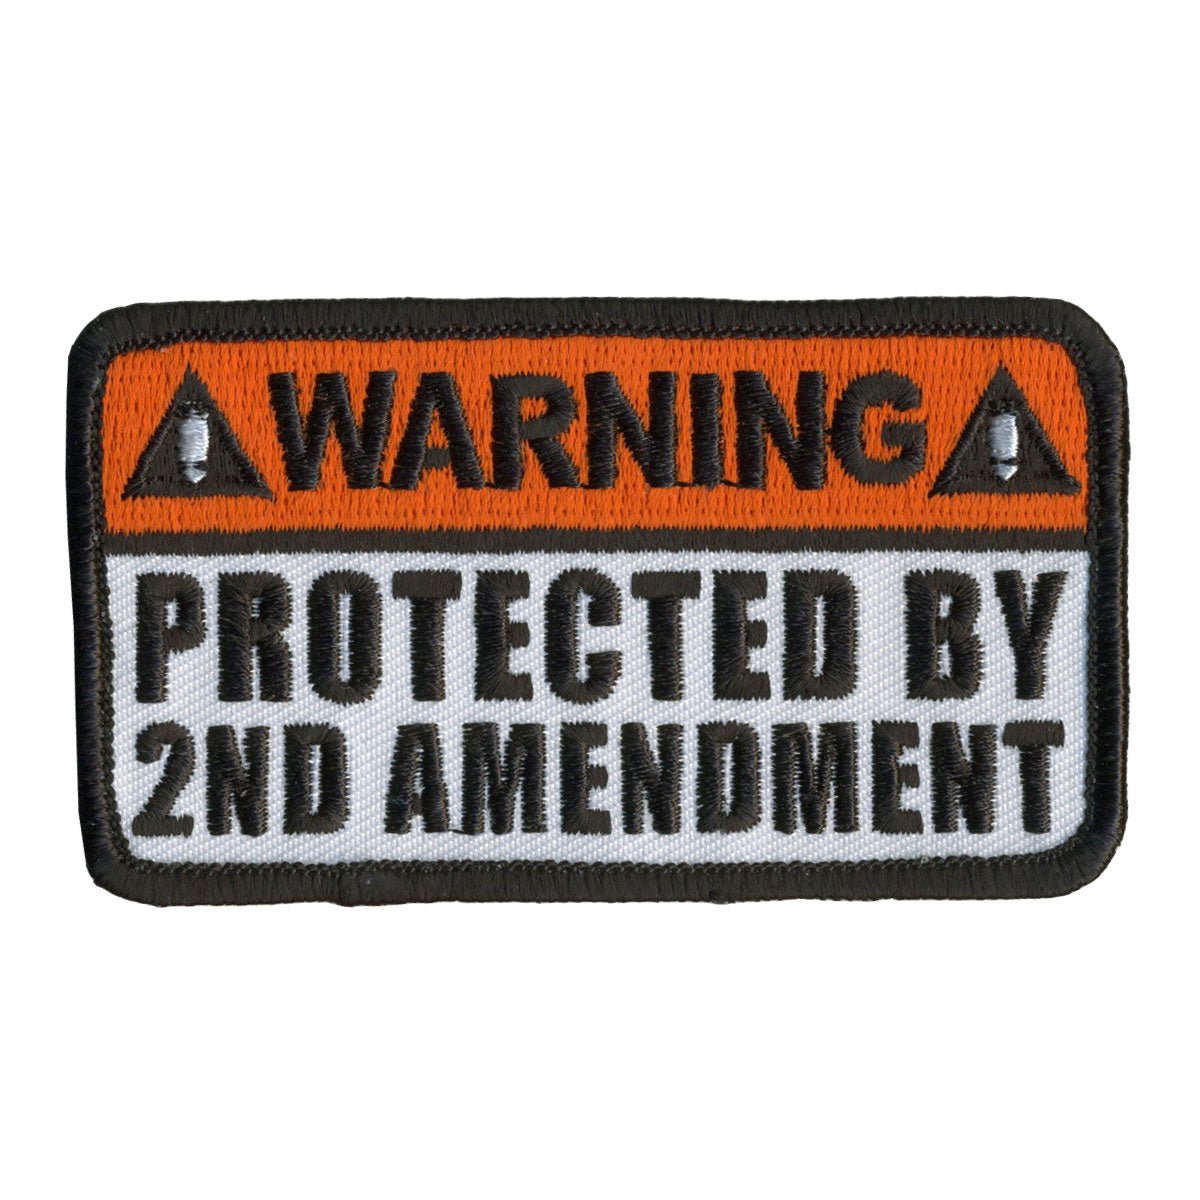 "Hot Leathers Protected by 2nd Amendment 4"" x 2"" Patch"